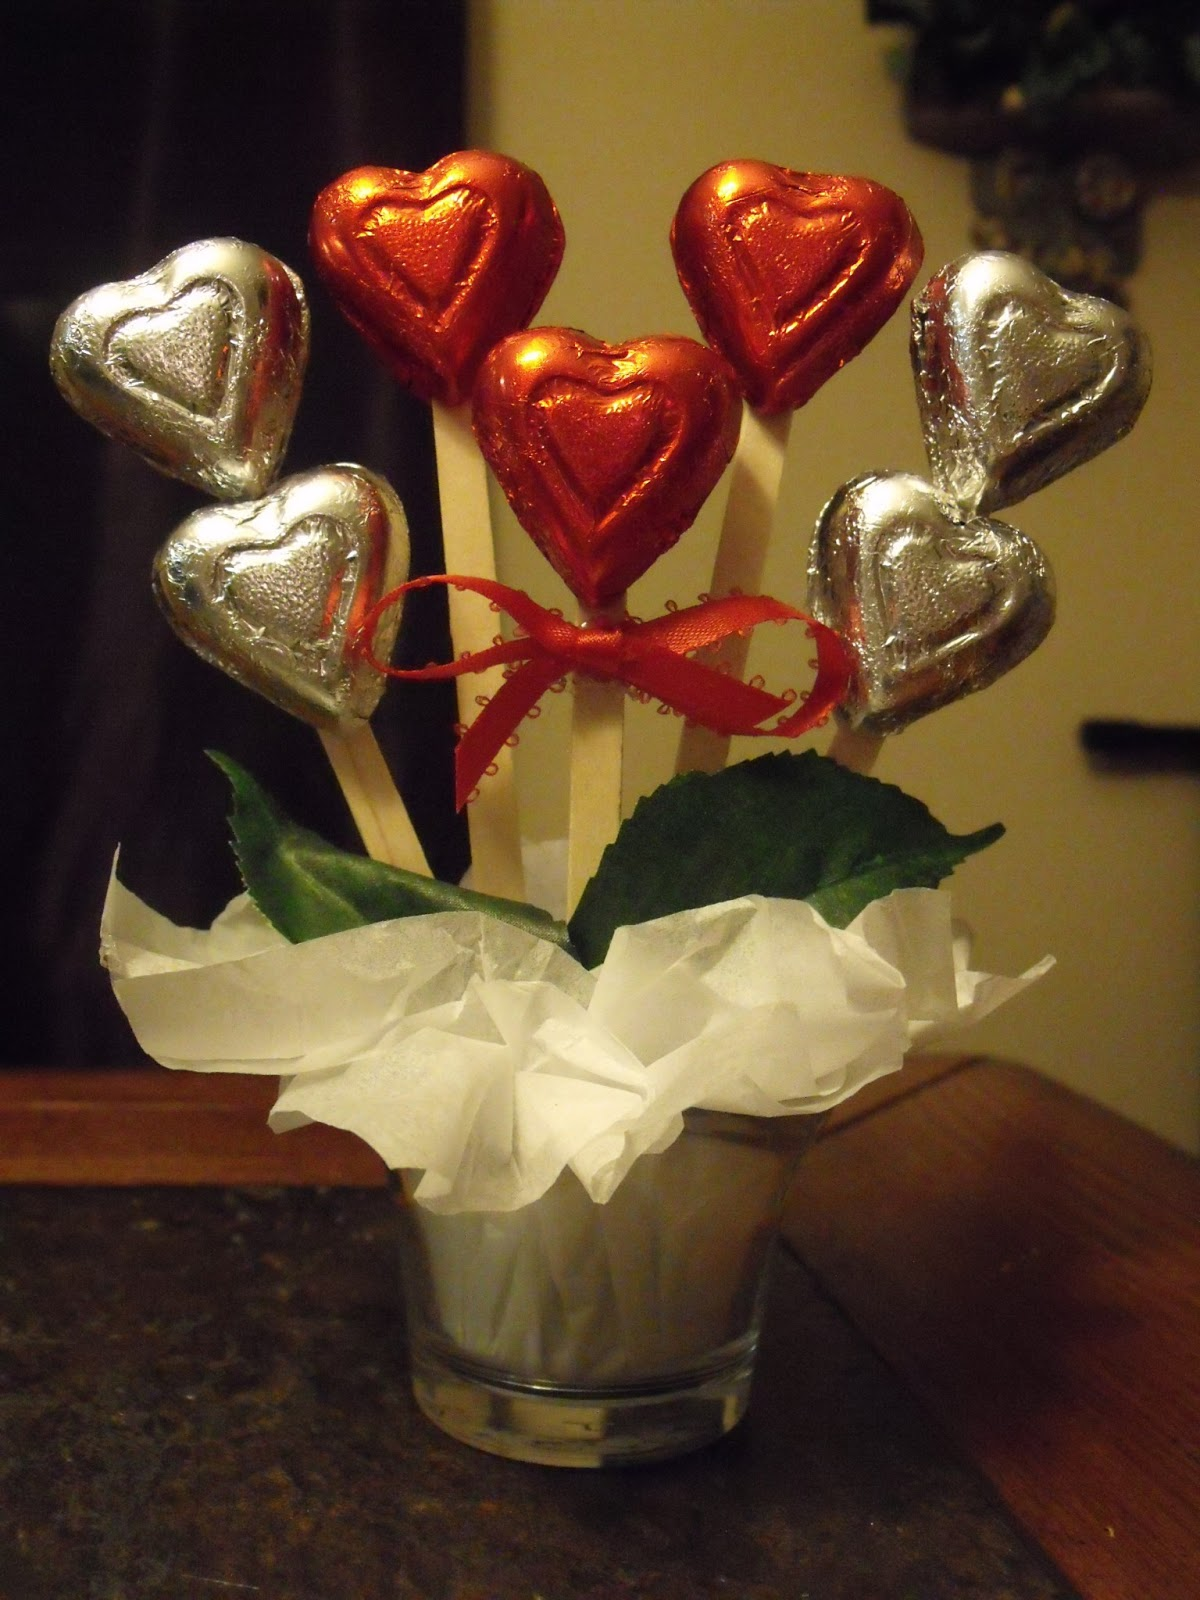 A Chocolate Bouquet Make An Adorable Little Chocolate